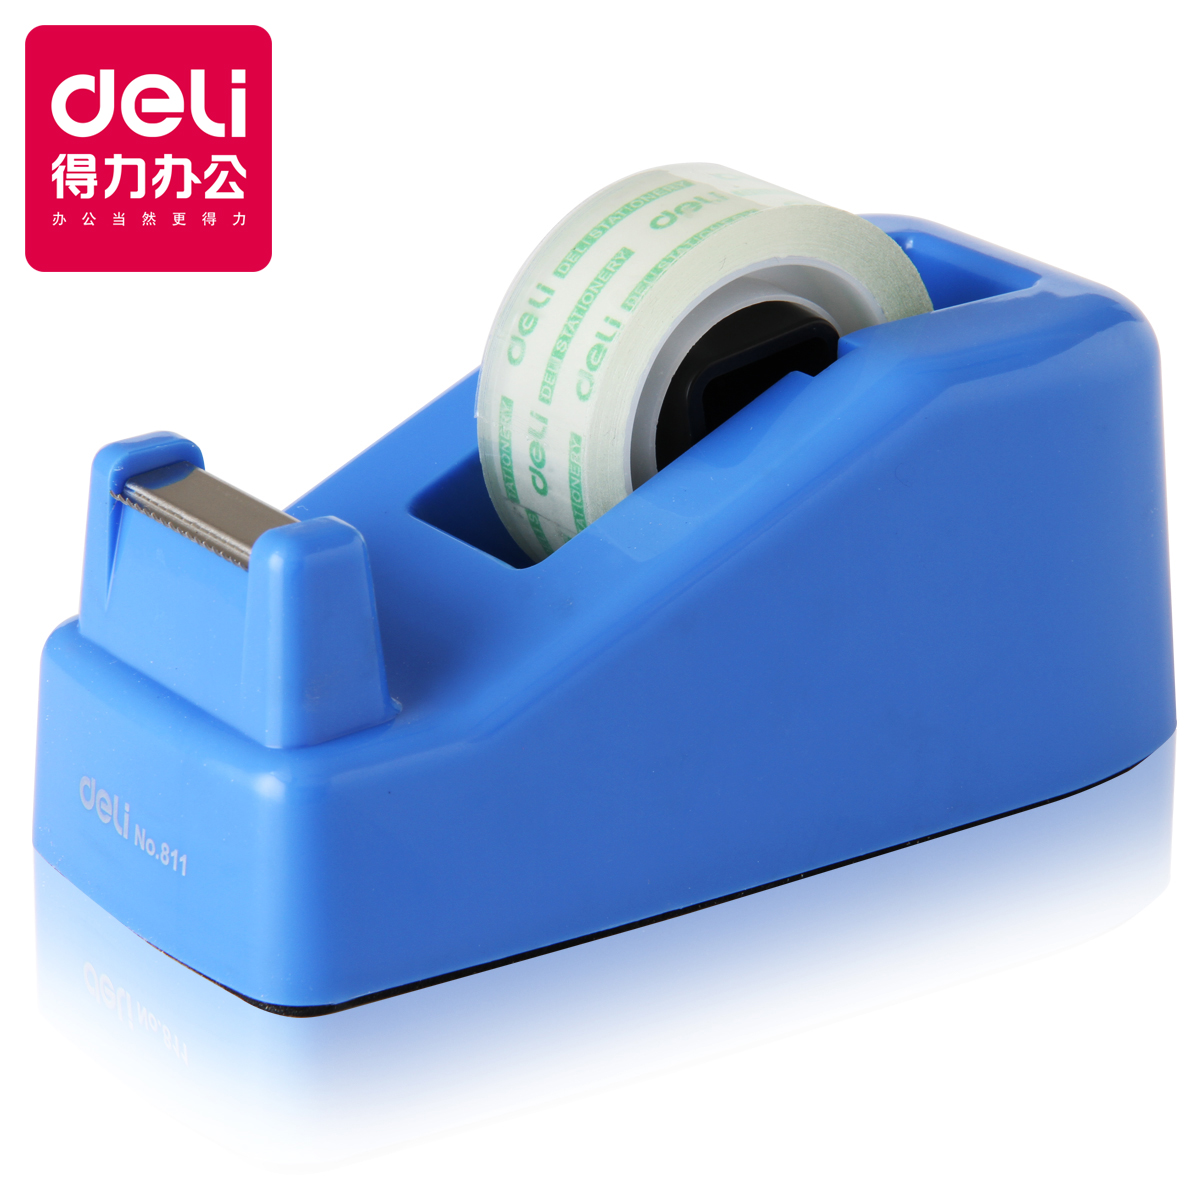 Deli 811 tape dispenser deli deli deli tape dispenser trumpet paper tape transparent tape small tape dispenser tape cutting